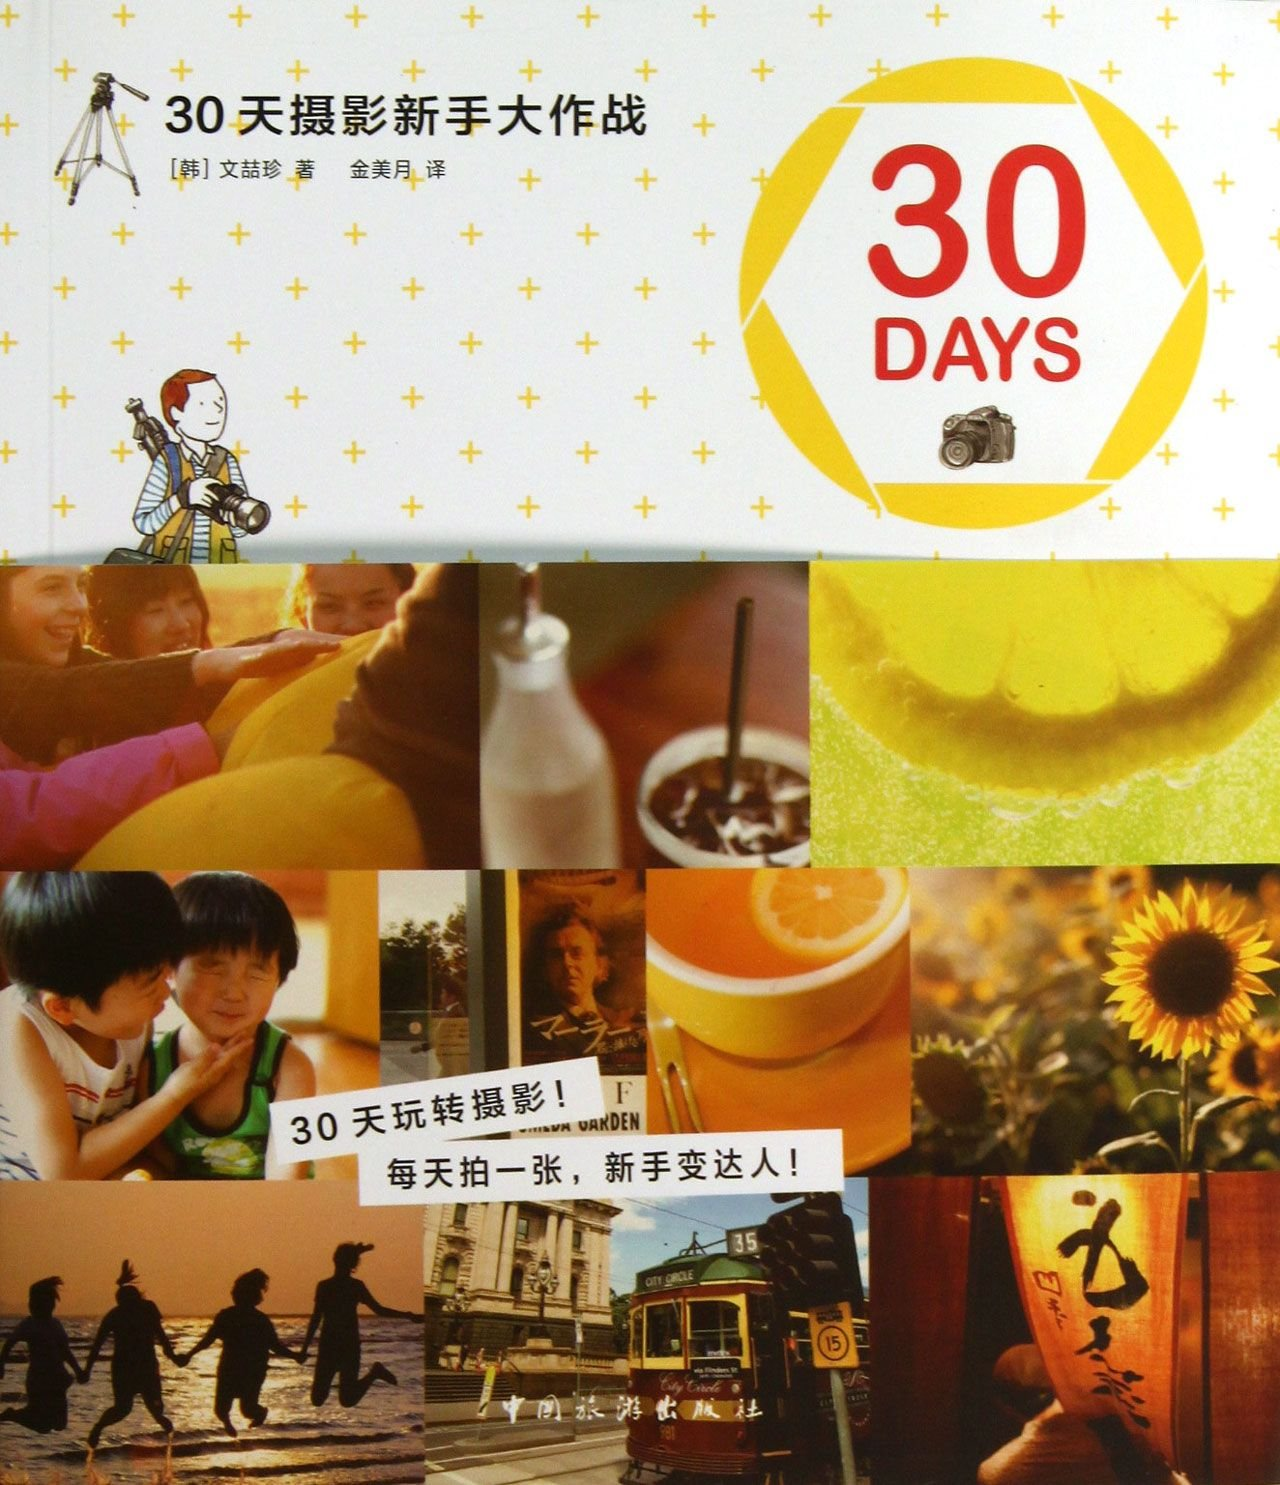 Download 30 days photography novice big battle(Chinese Edition) ebook